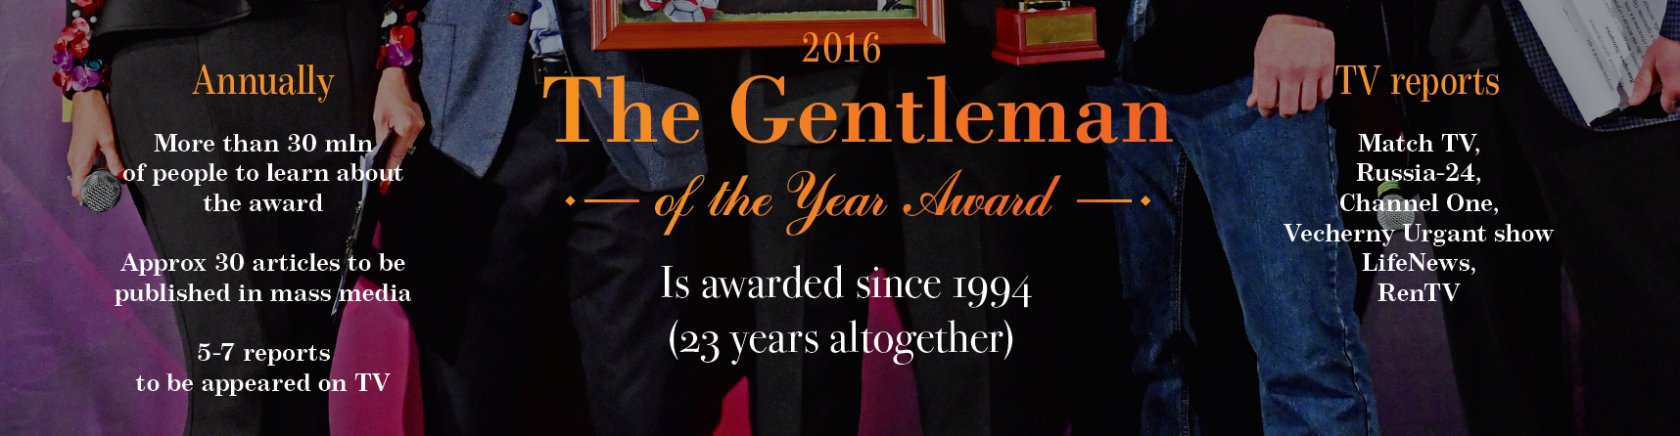 The Gentleman of the Year Award 2017